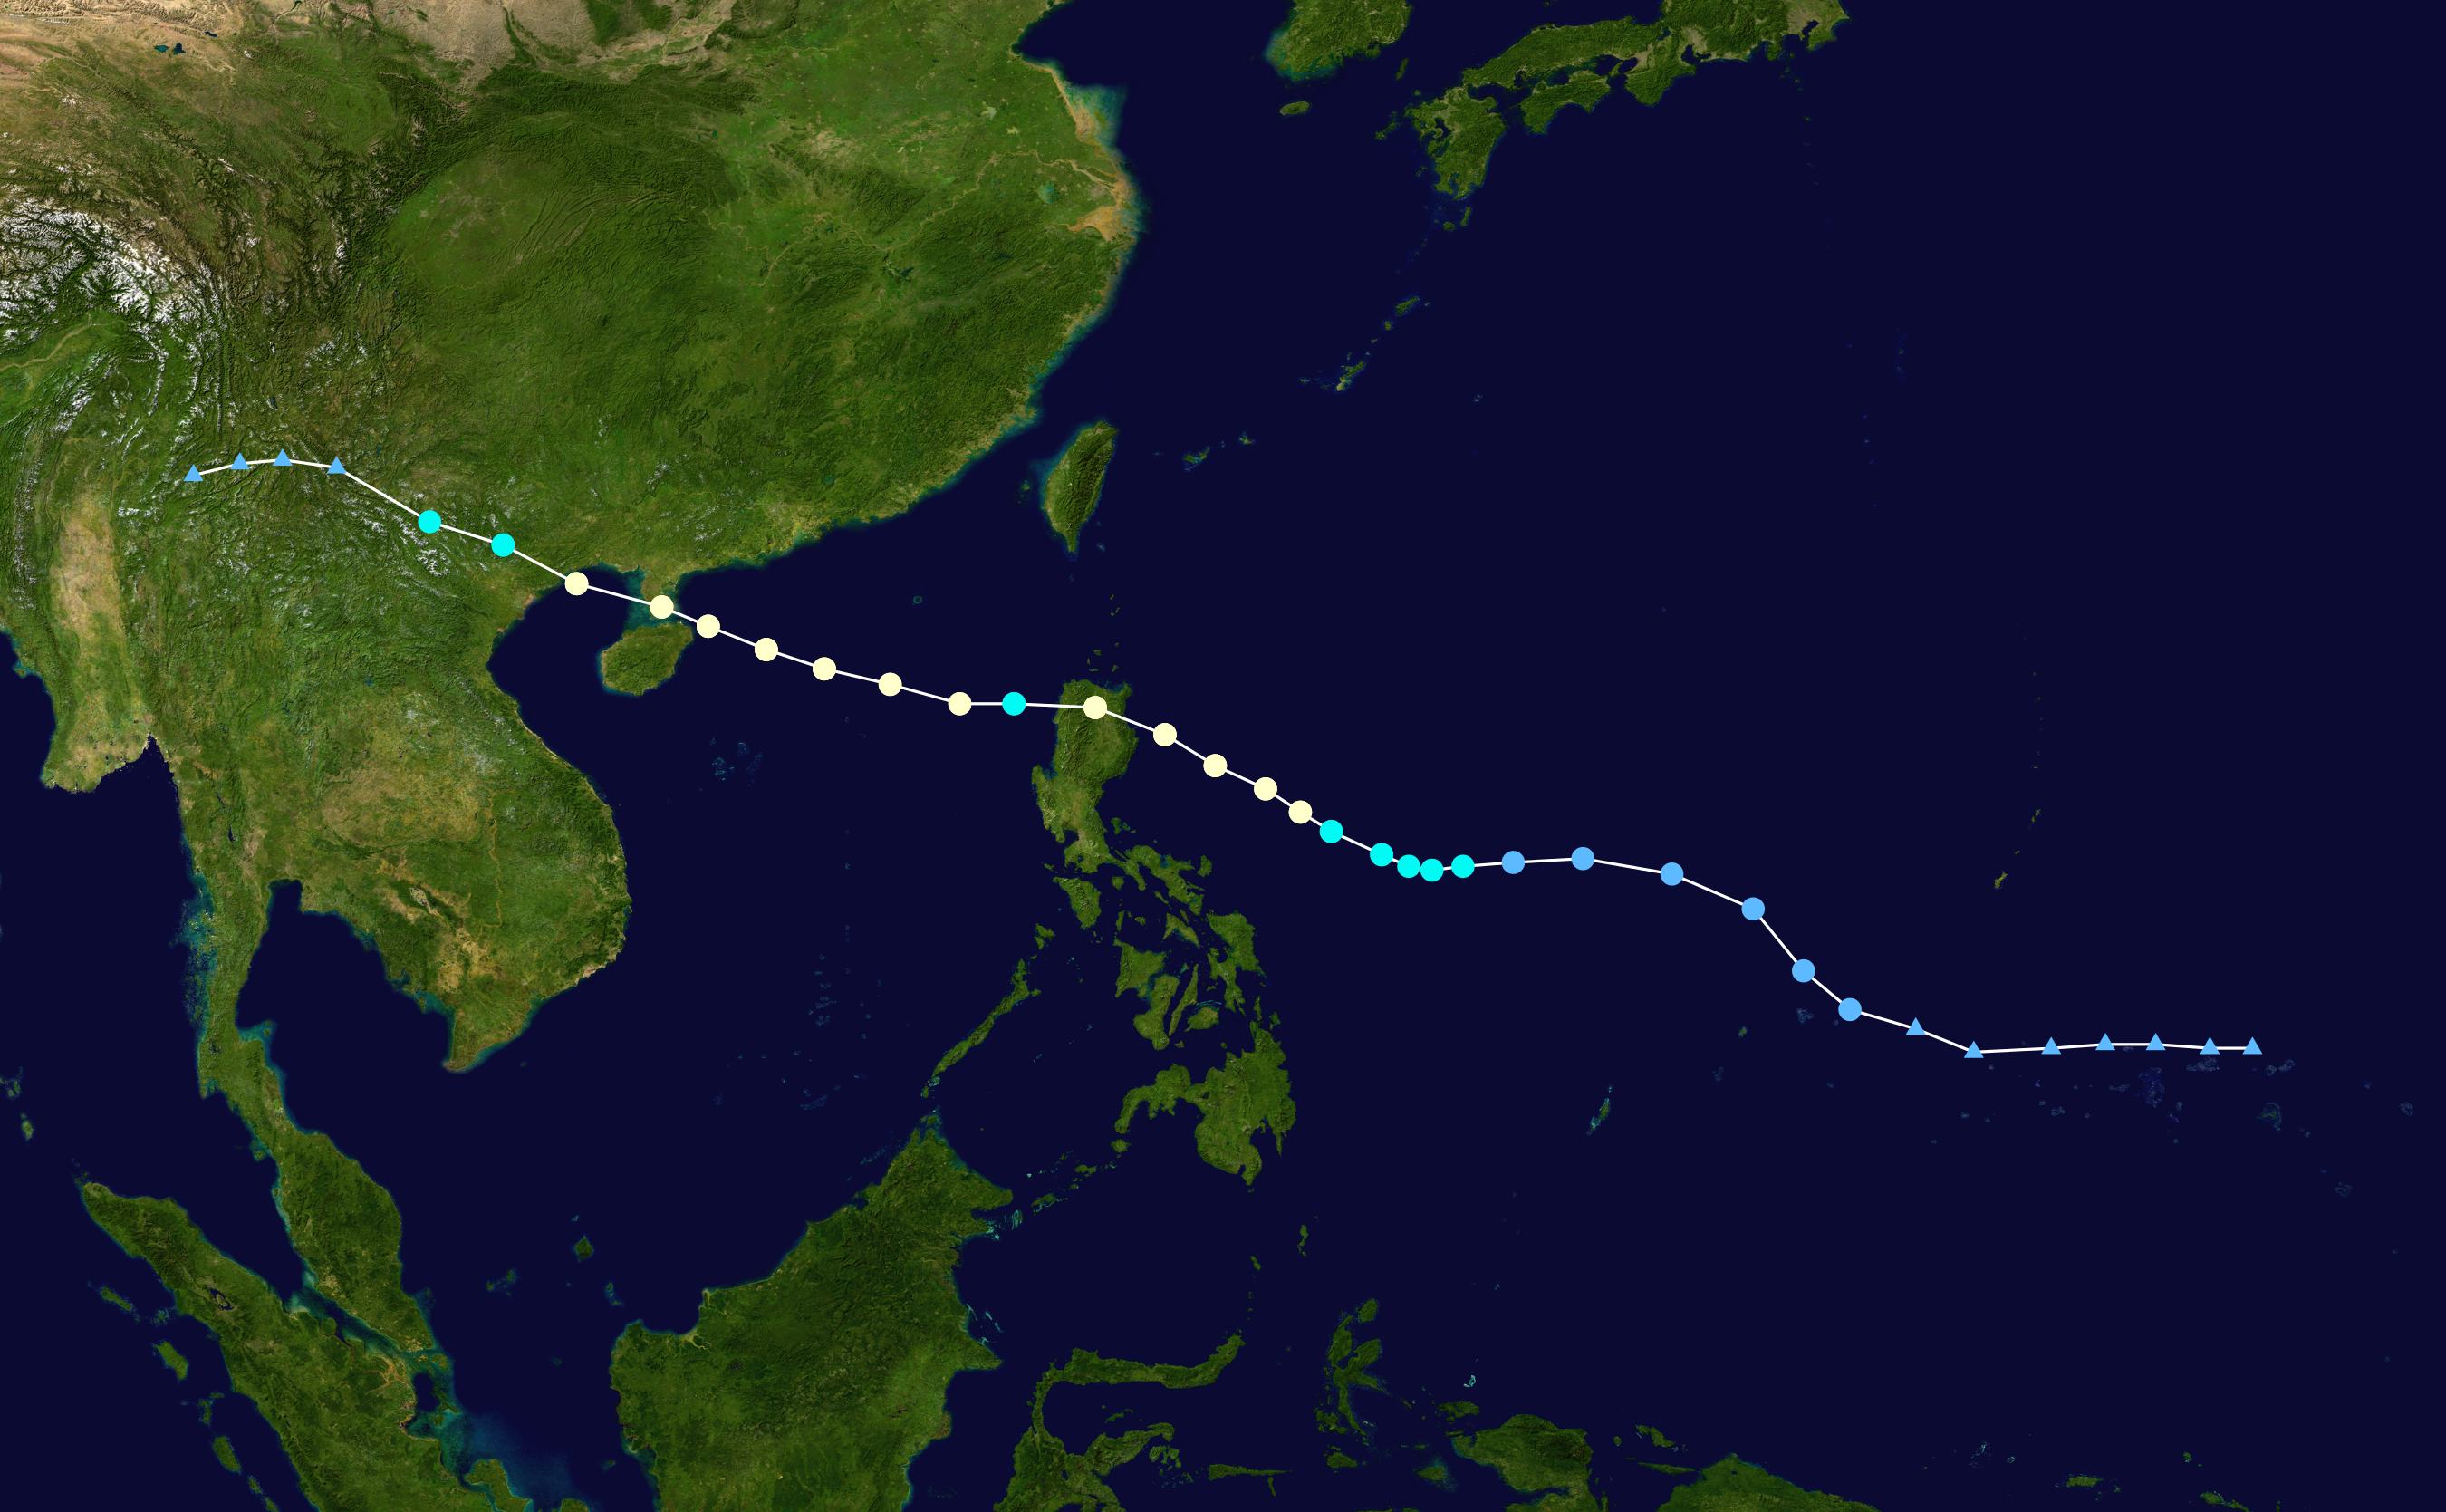 Track map of Typhoon Kalmaegi of the 2014 Pacific typhoon season. Created by Meow using Wikipedia / WikiProject Tropical cyclones/Tracks.